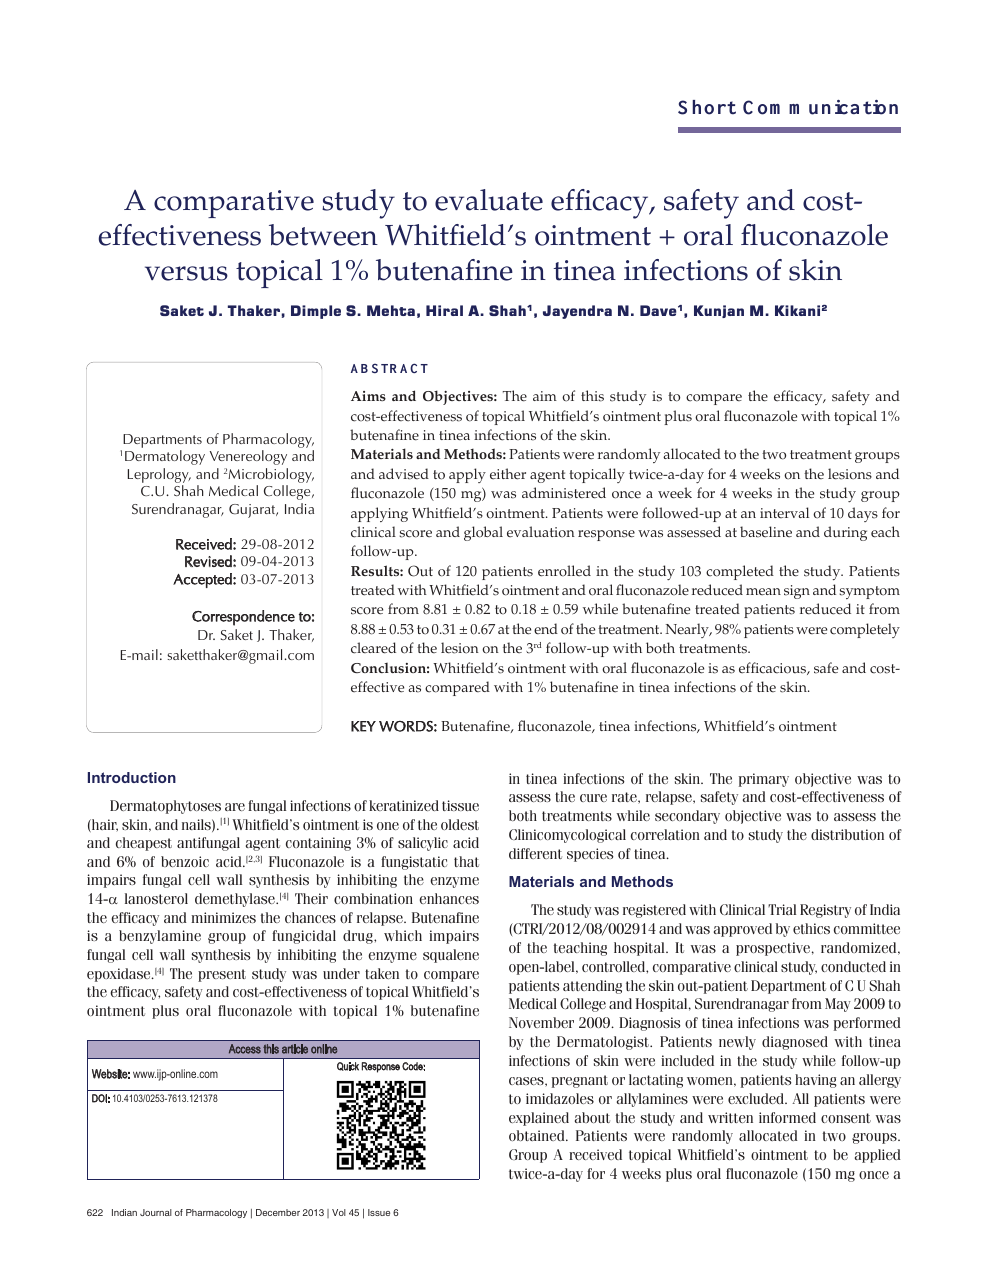 A comparative study to evaluate efficacy, safety and cost